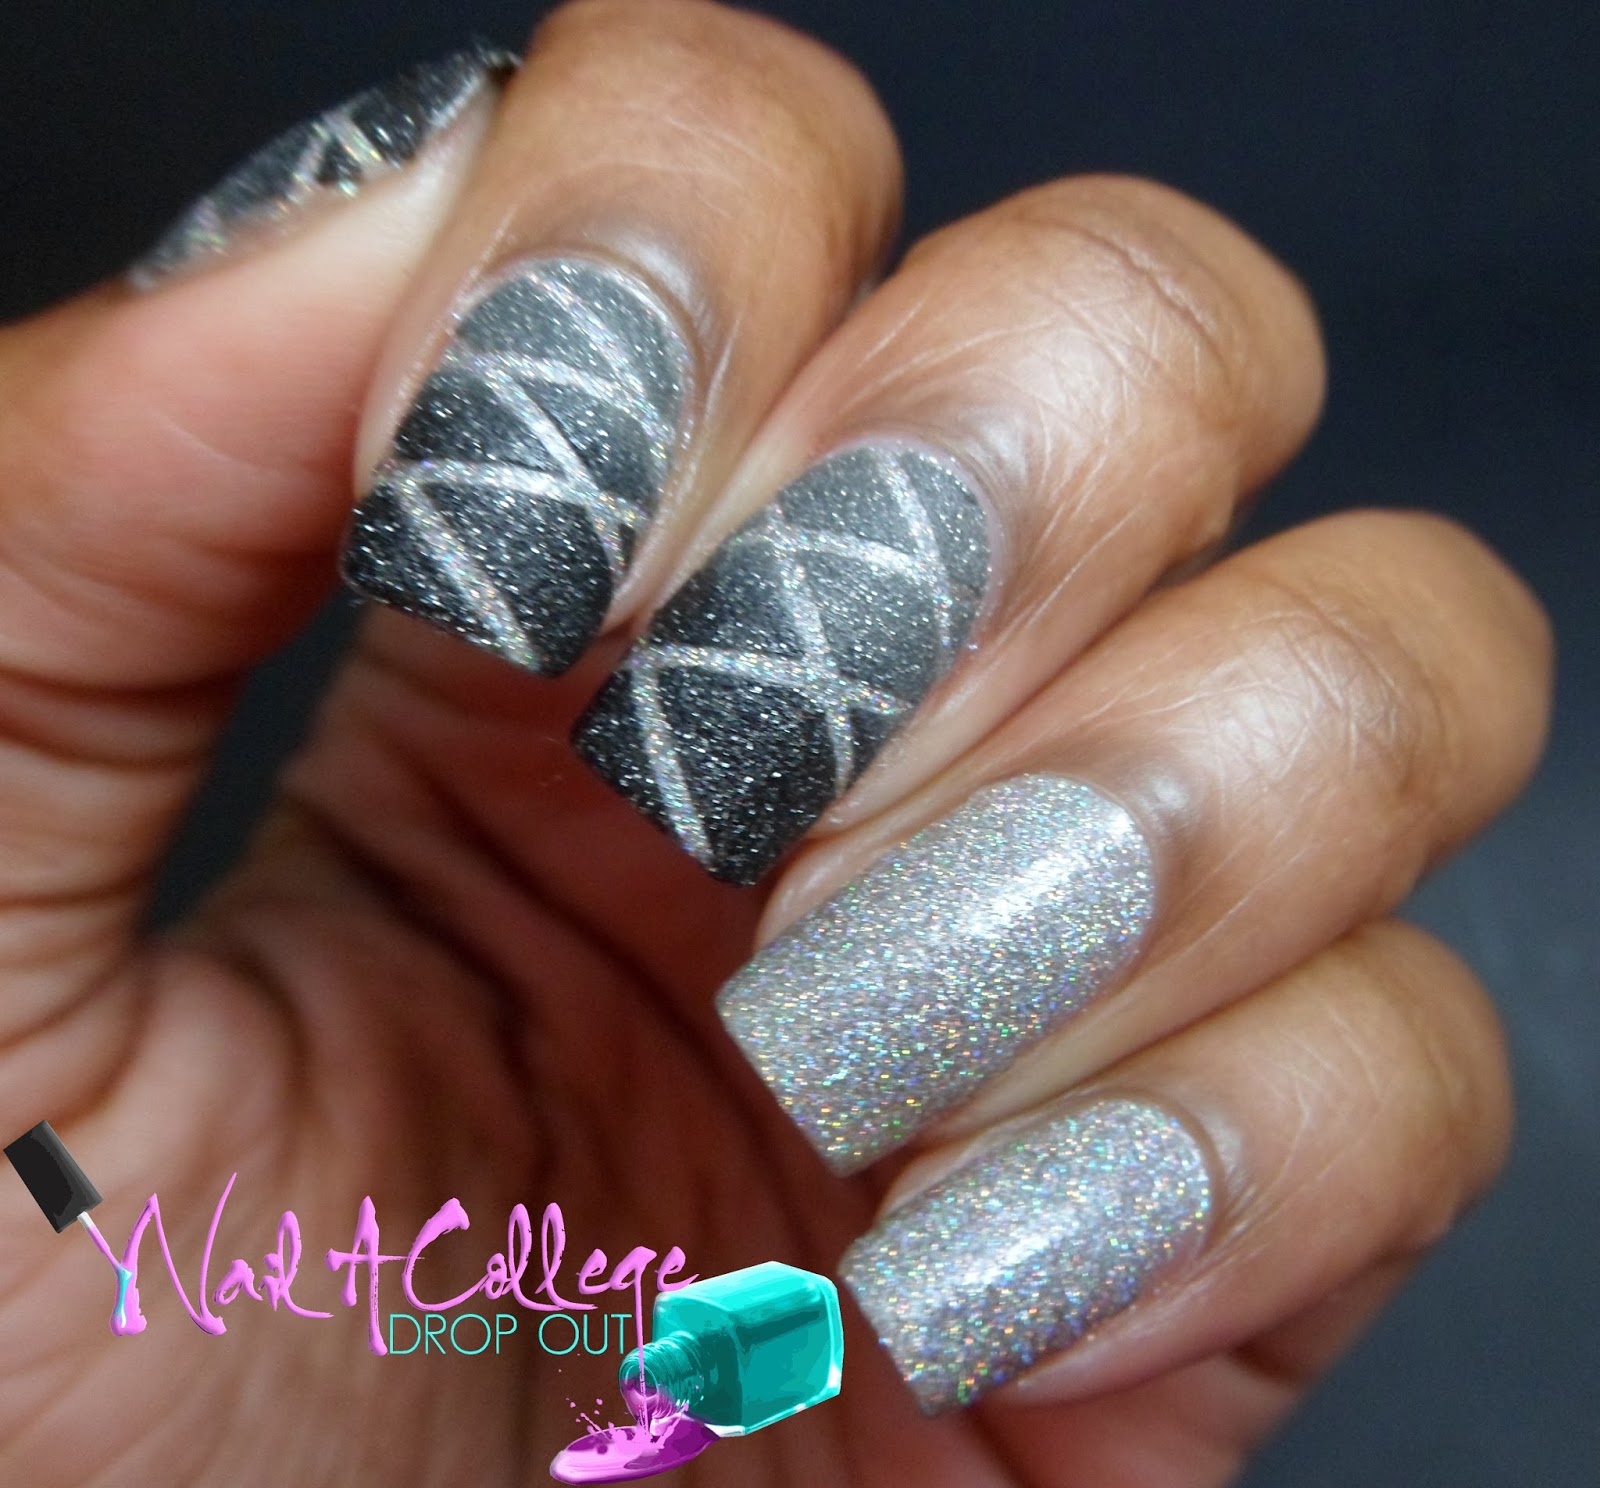 Nail A College Drop Out: My First Time w/ Zoya Pixie Dusts